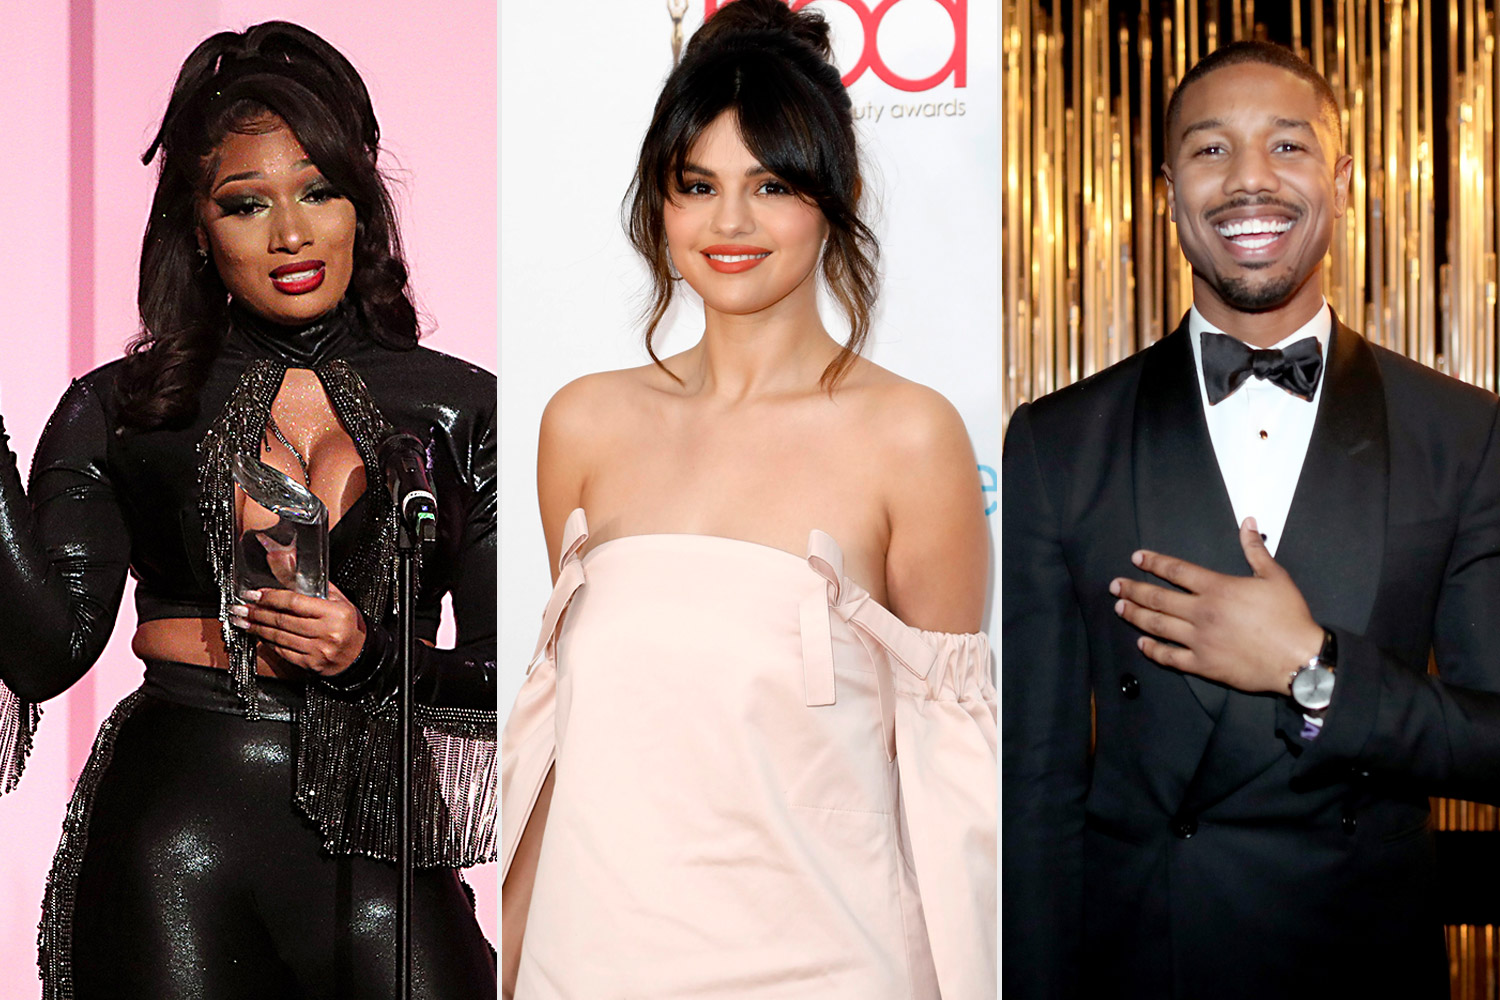 megan thee stallion, selena gomez, and (R) michael b jordan